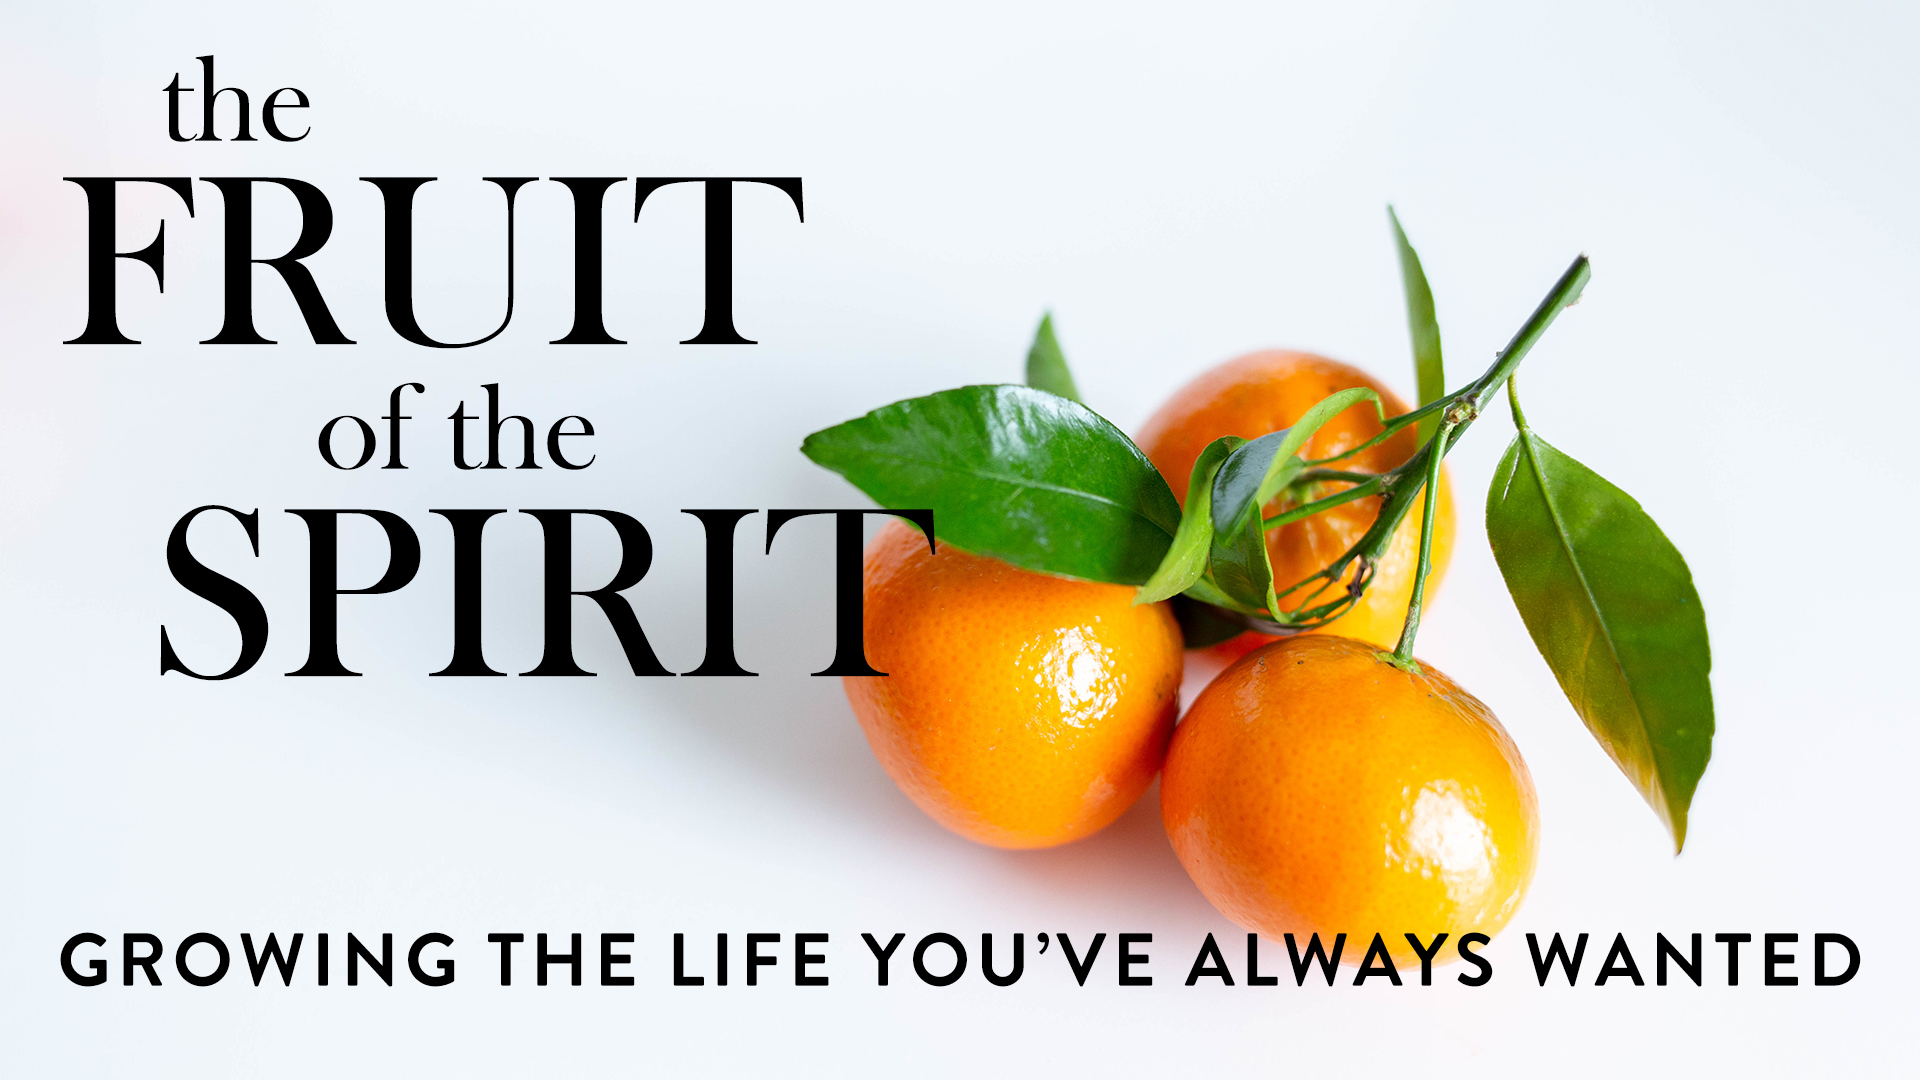 The Fruit of the Spirit - March 3, 2019 - May 12, 2019